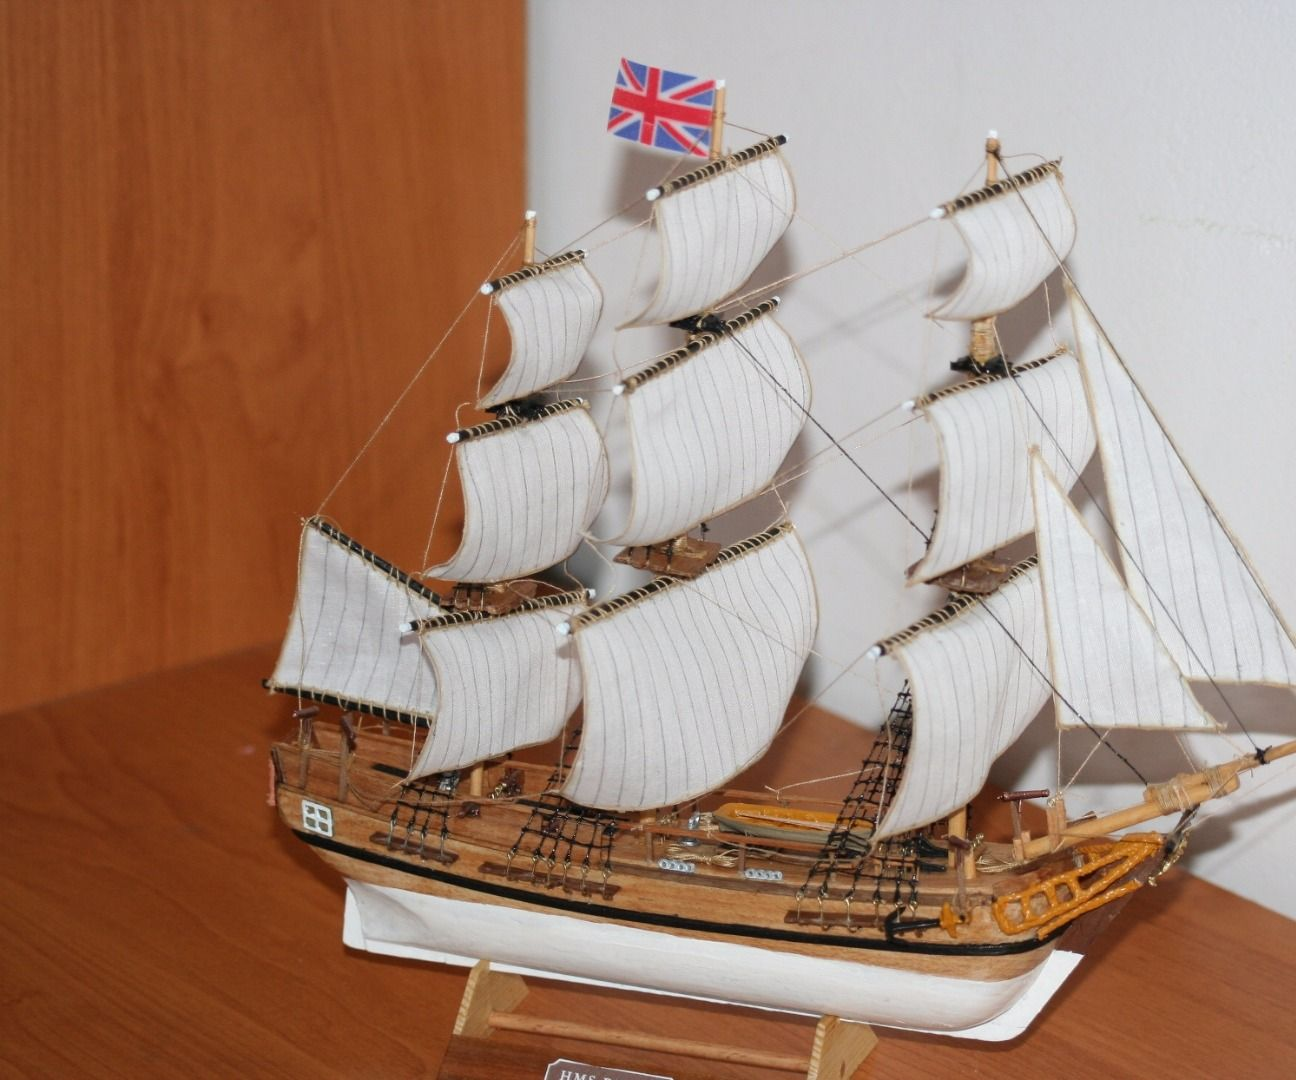 How to build small model ship from kits